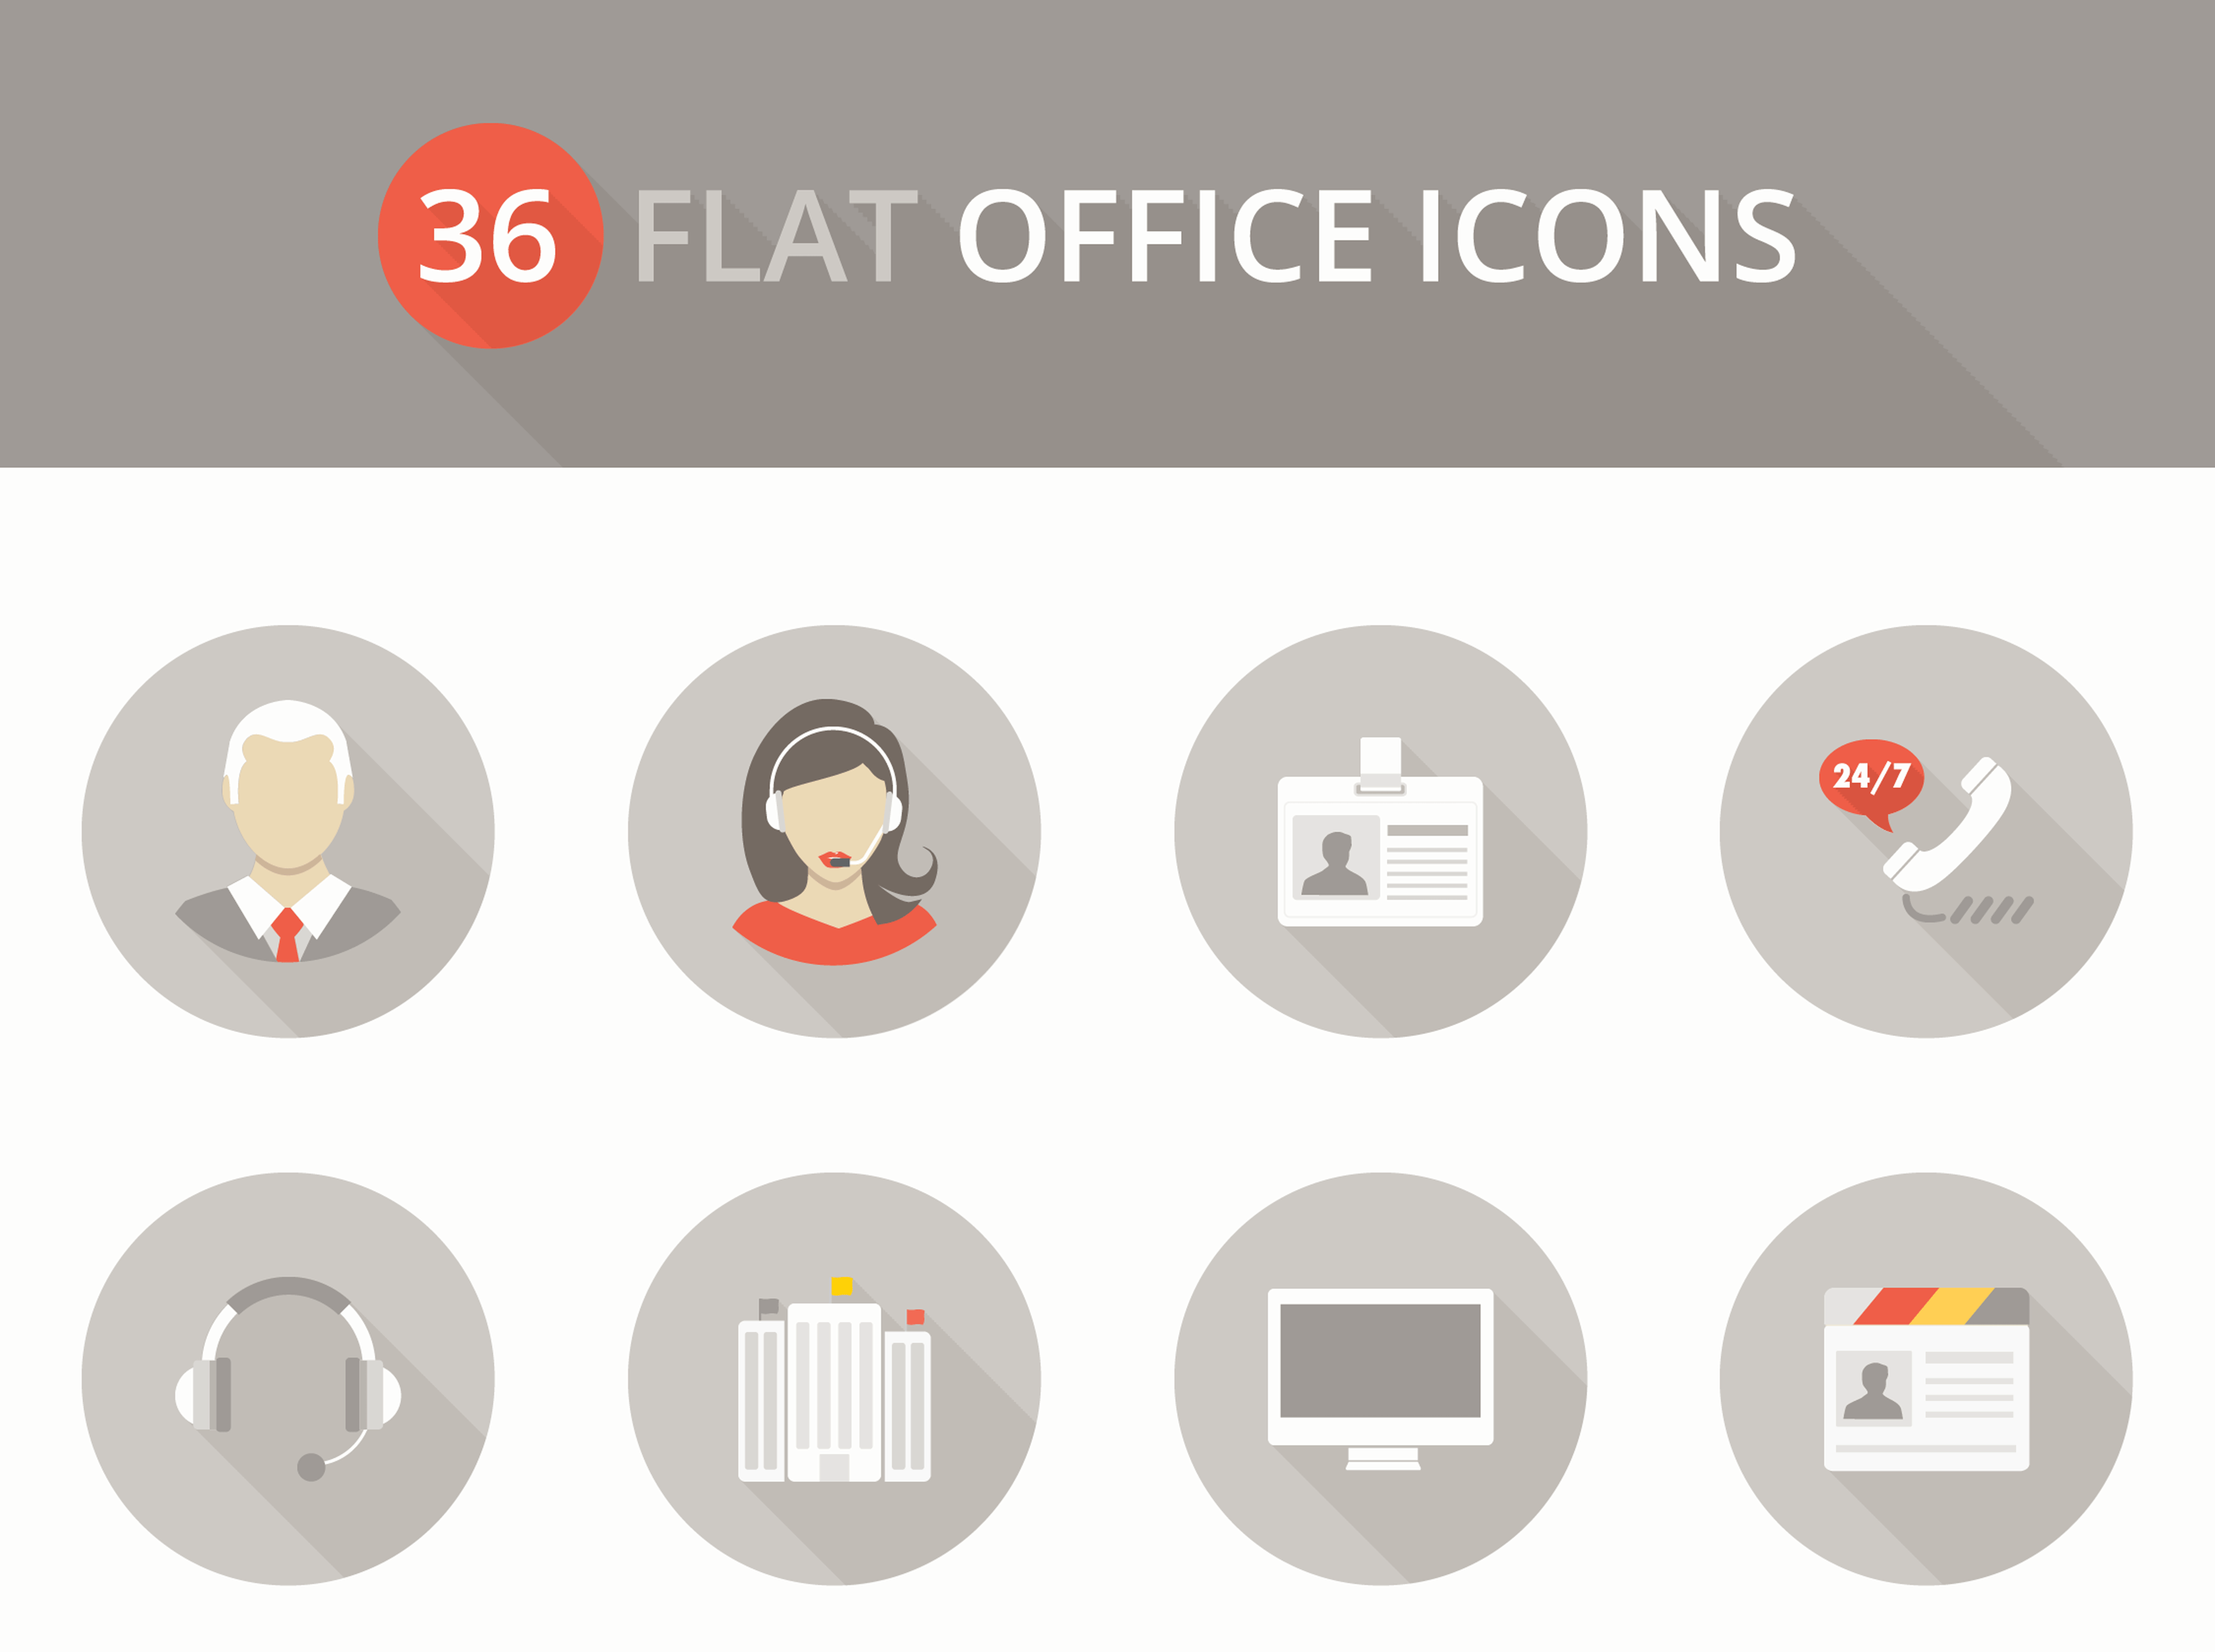 36 free flat icons for your next productivity app (With